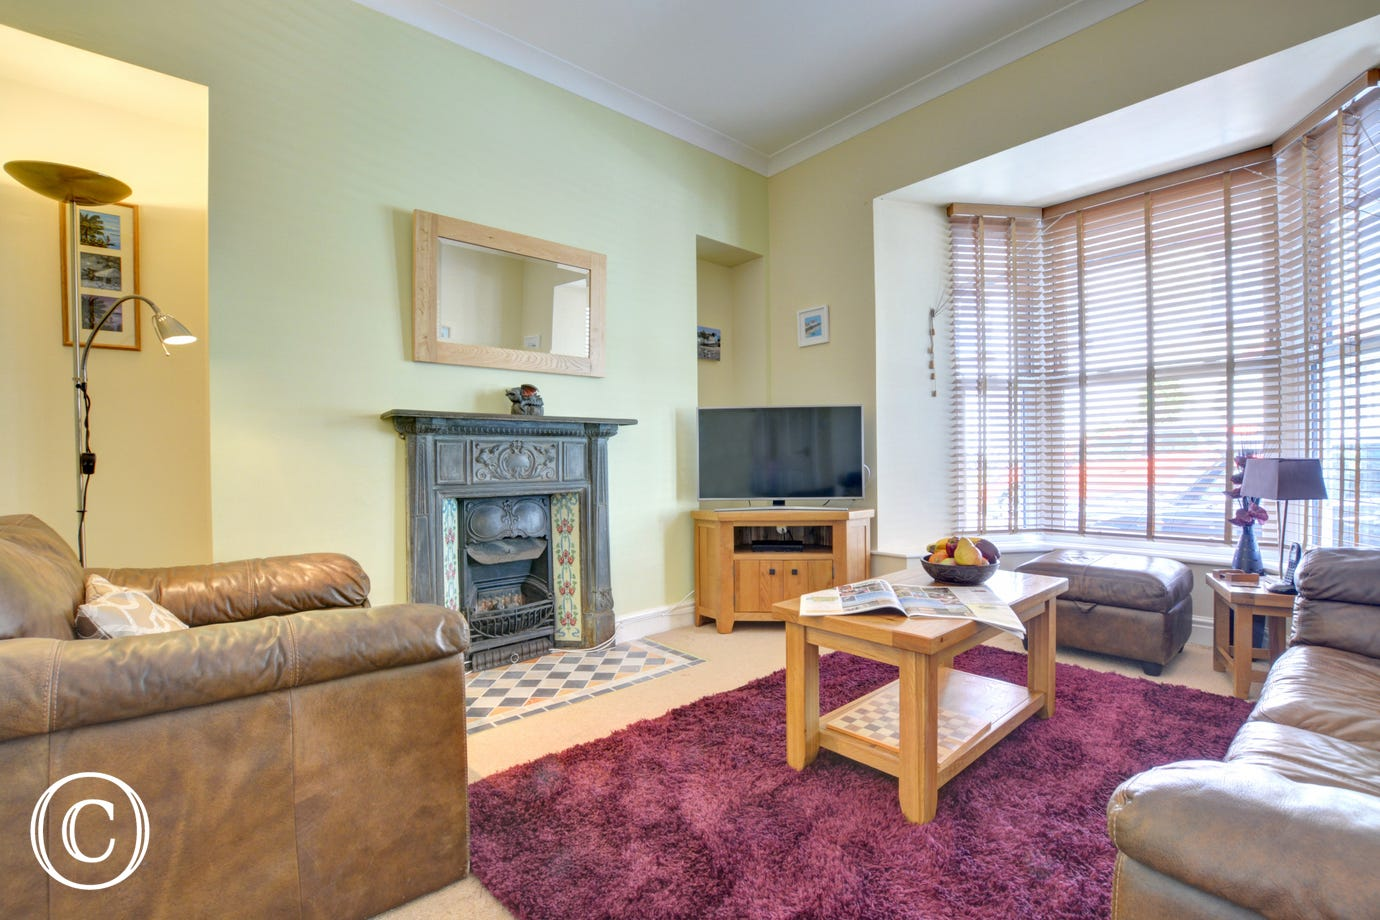 Tenby cottage ideal for a holiday with cosy lounge